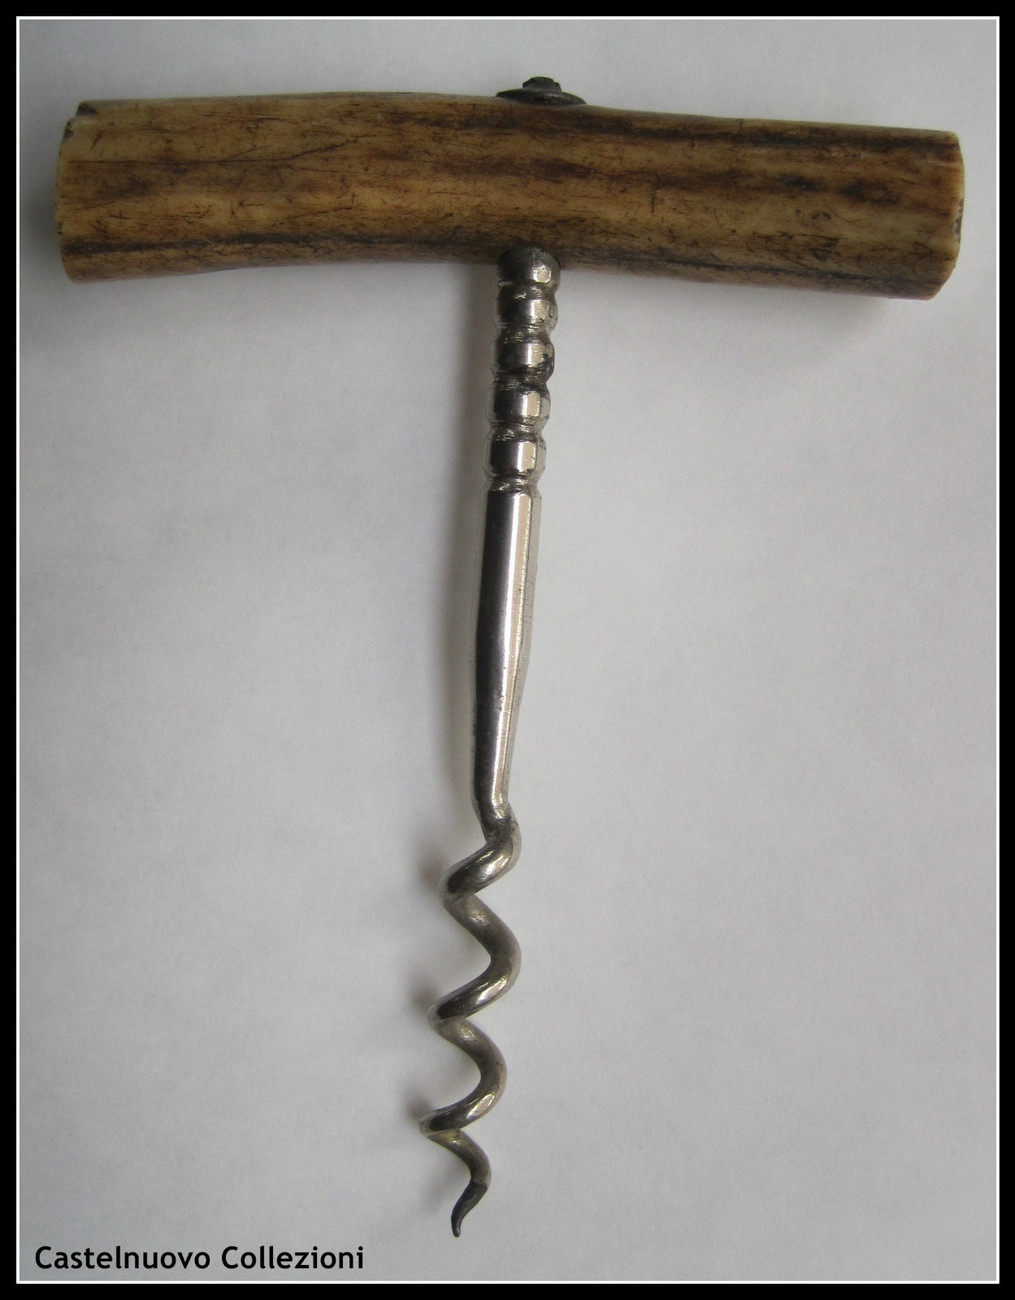 Vintage/Antique Antler Stag Horn Handle Corkscrew Tire Bouchon Korkenzieher